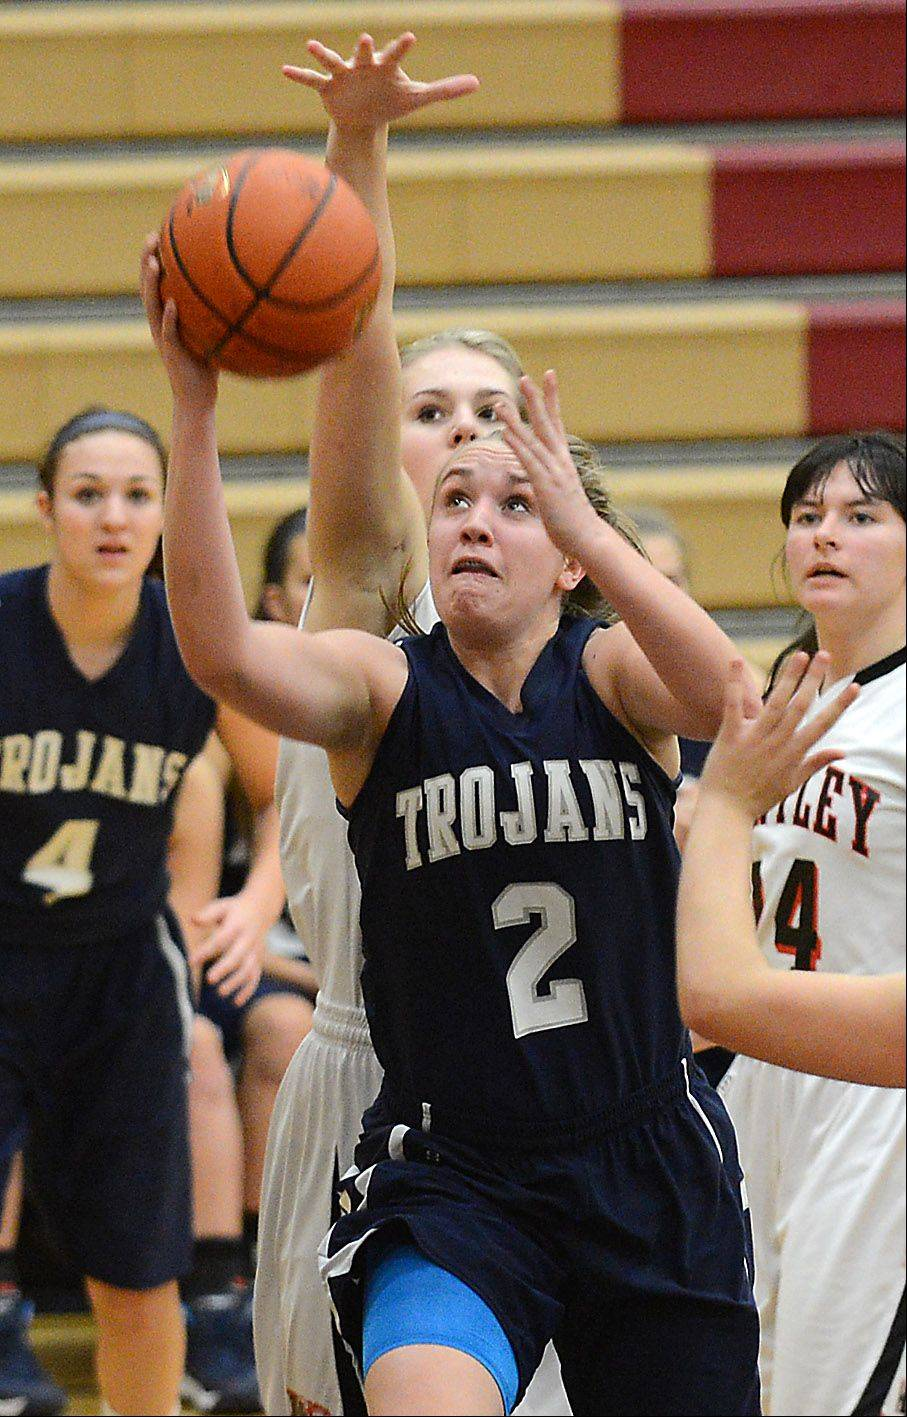 Cary-Grove's Katie Barker (2) drives to the basket during Monday's game in Huntley.